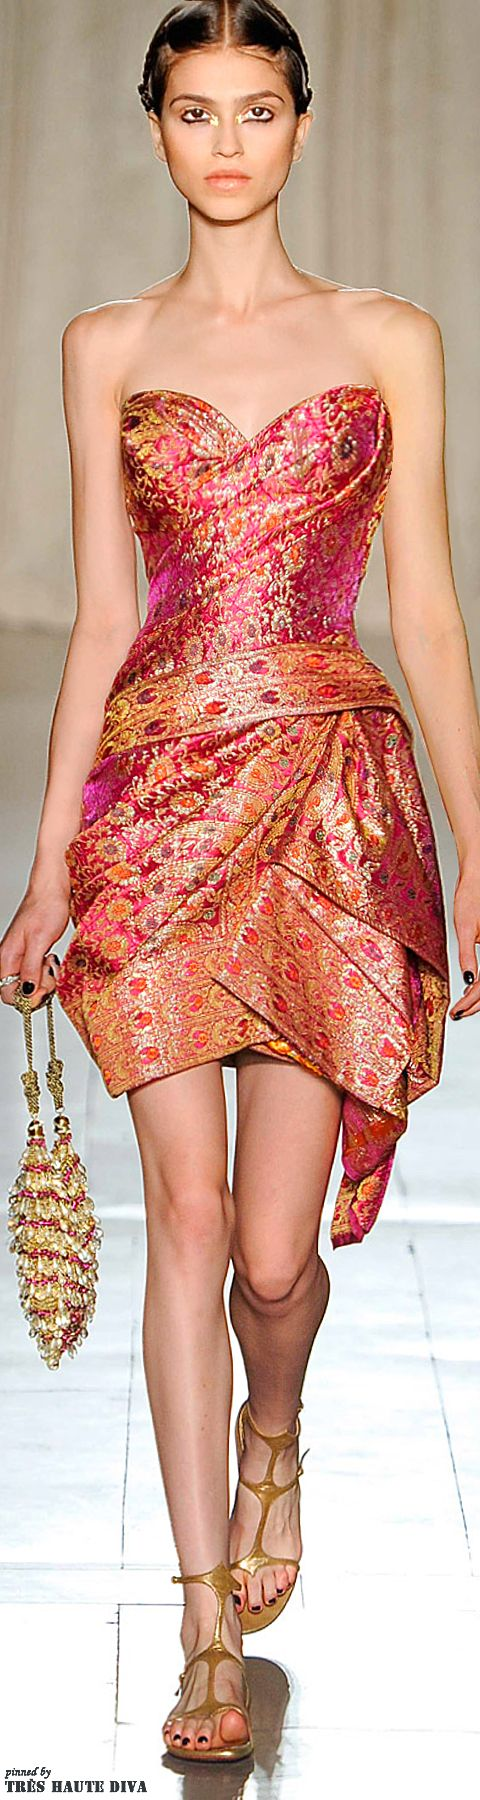 Marchesa Spring/Summer 2013 - SARI Inspired Dress -- Impressively Fashion Forward